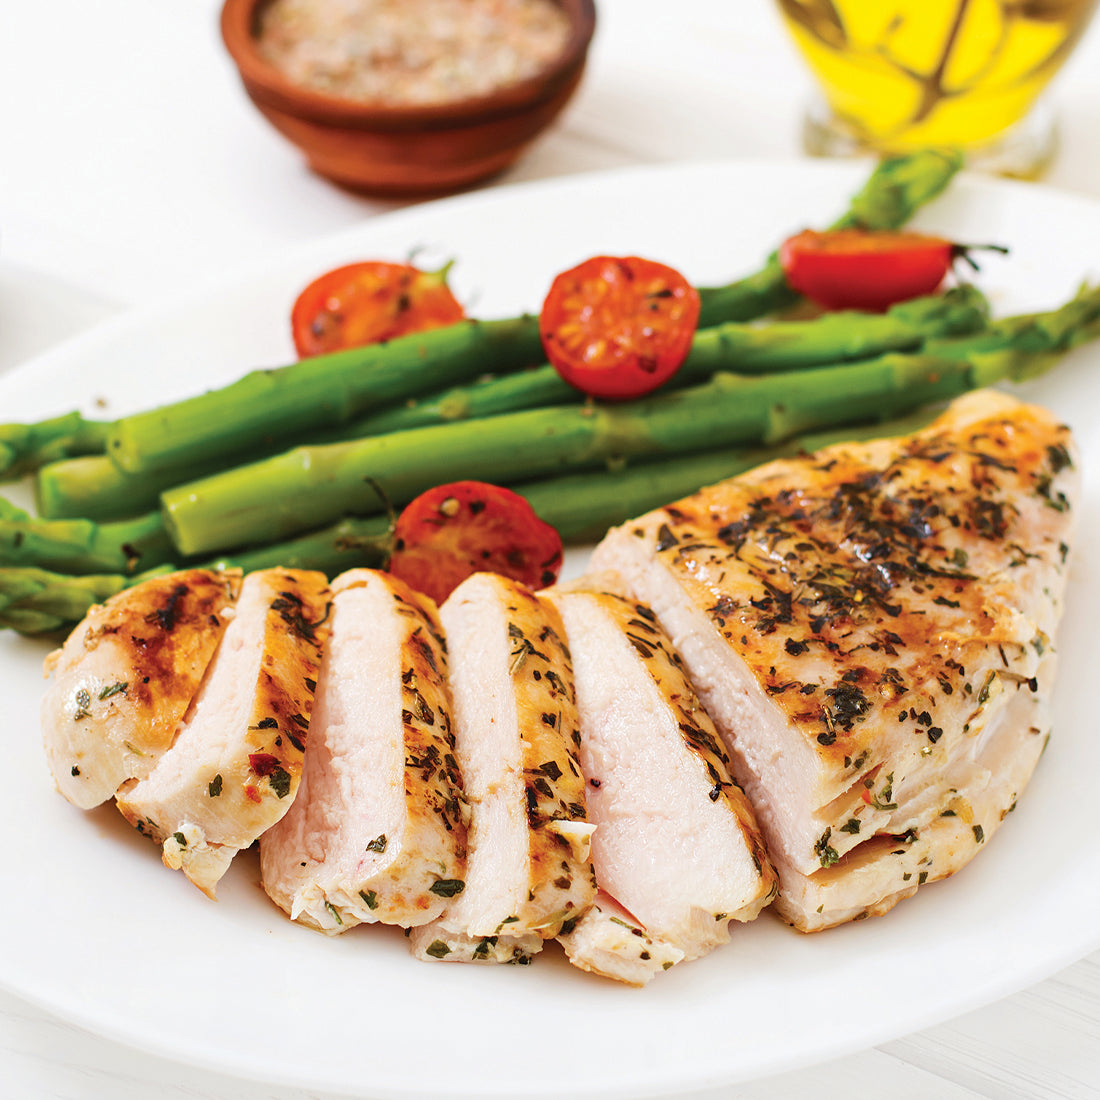 Italian Herb & Garlic Marinade shown on grilled chicken served with asparagus.